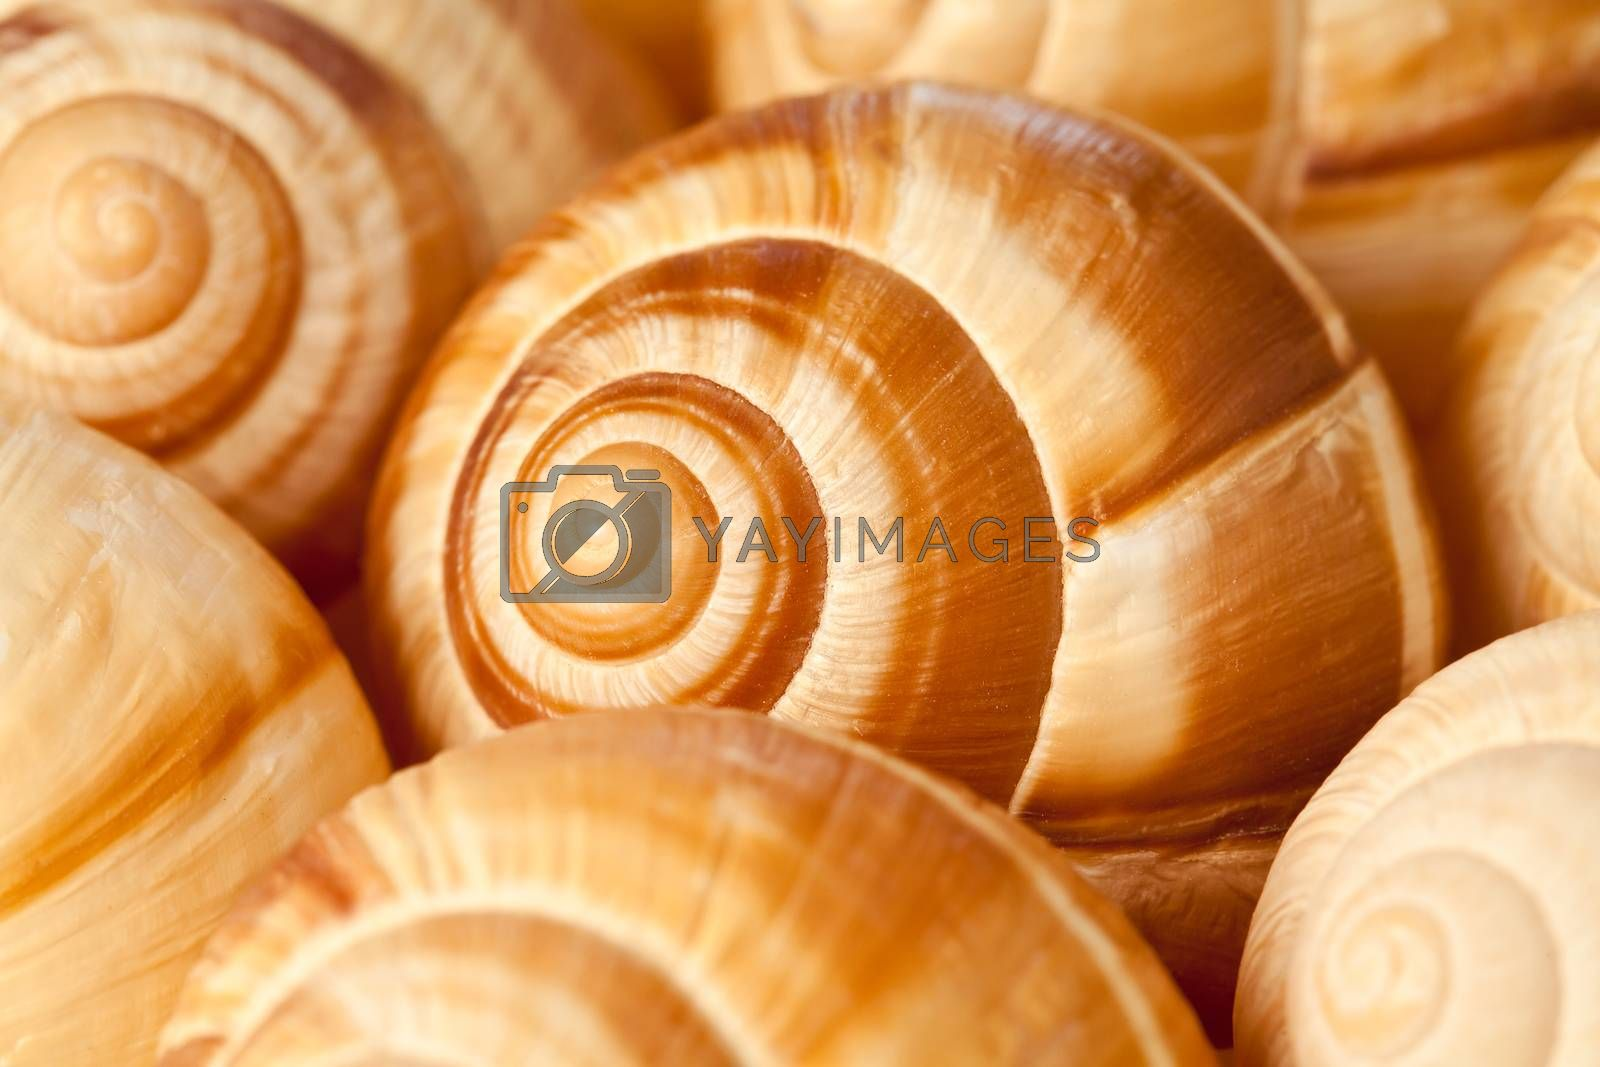 Close up photograph of some snail shells